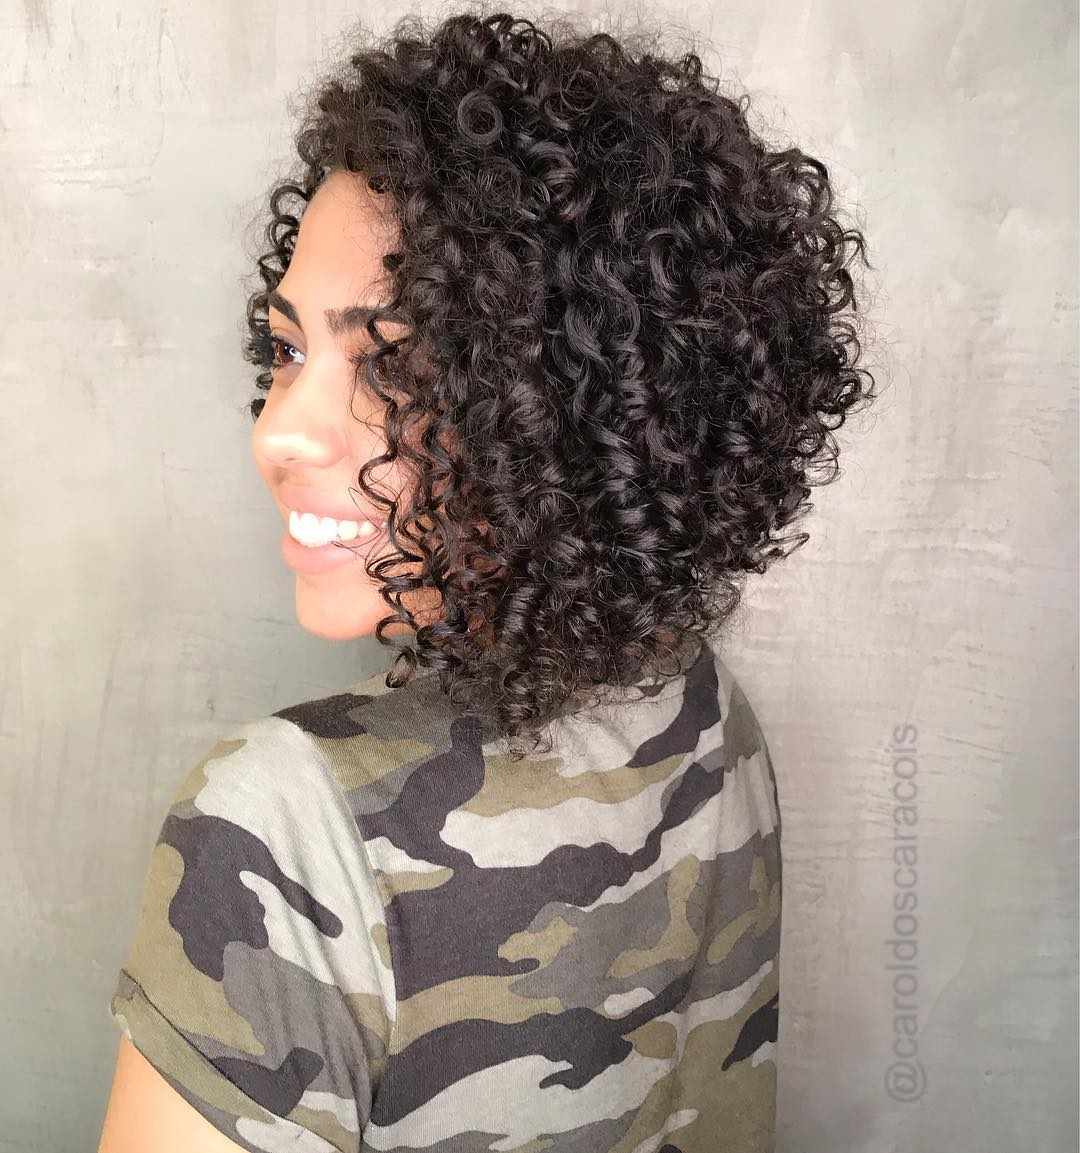 Inverted Bob for Curls